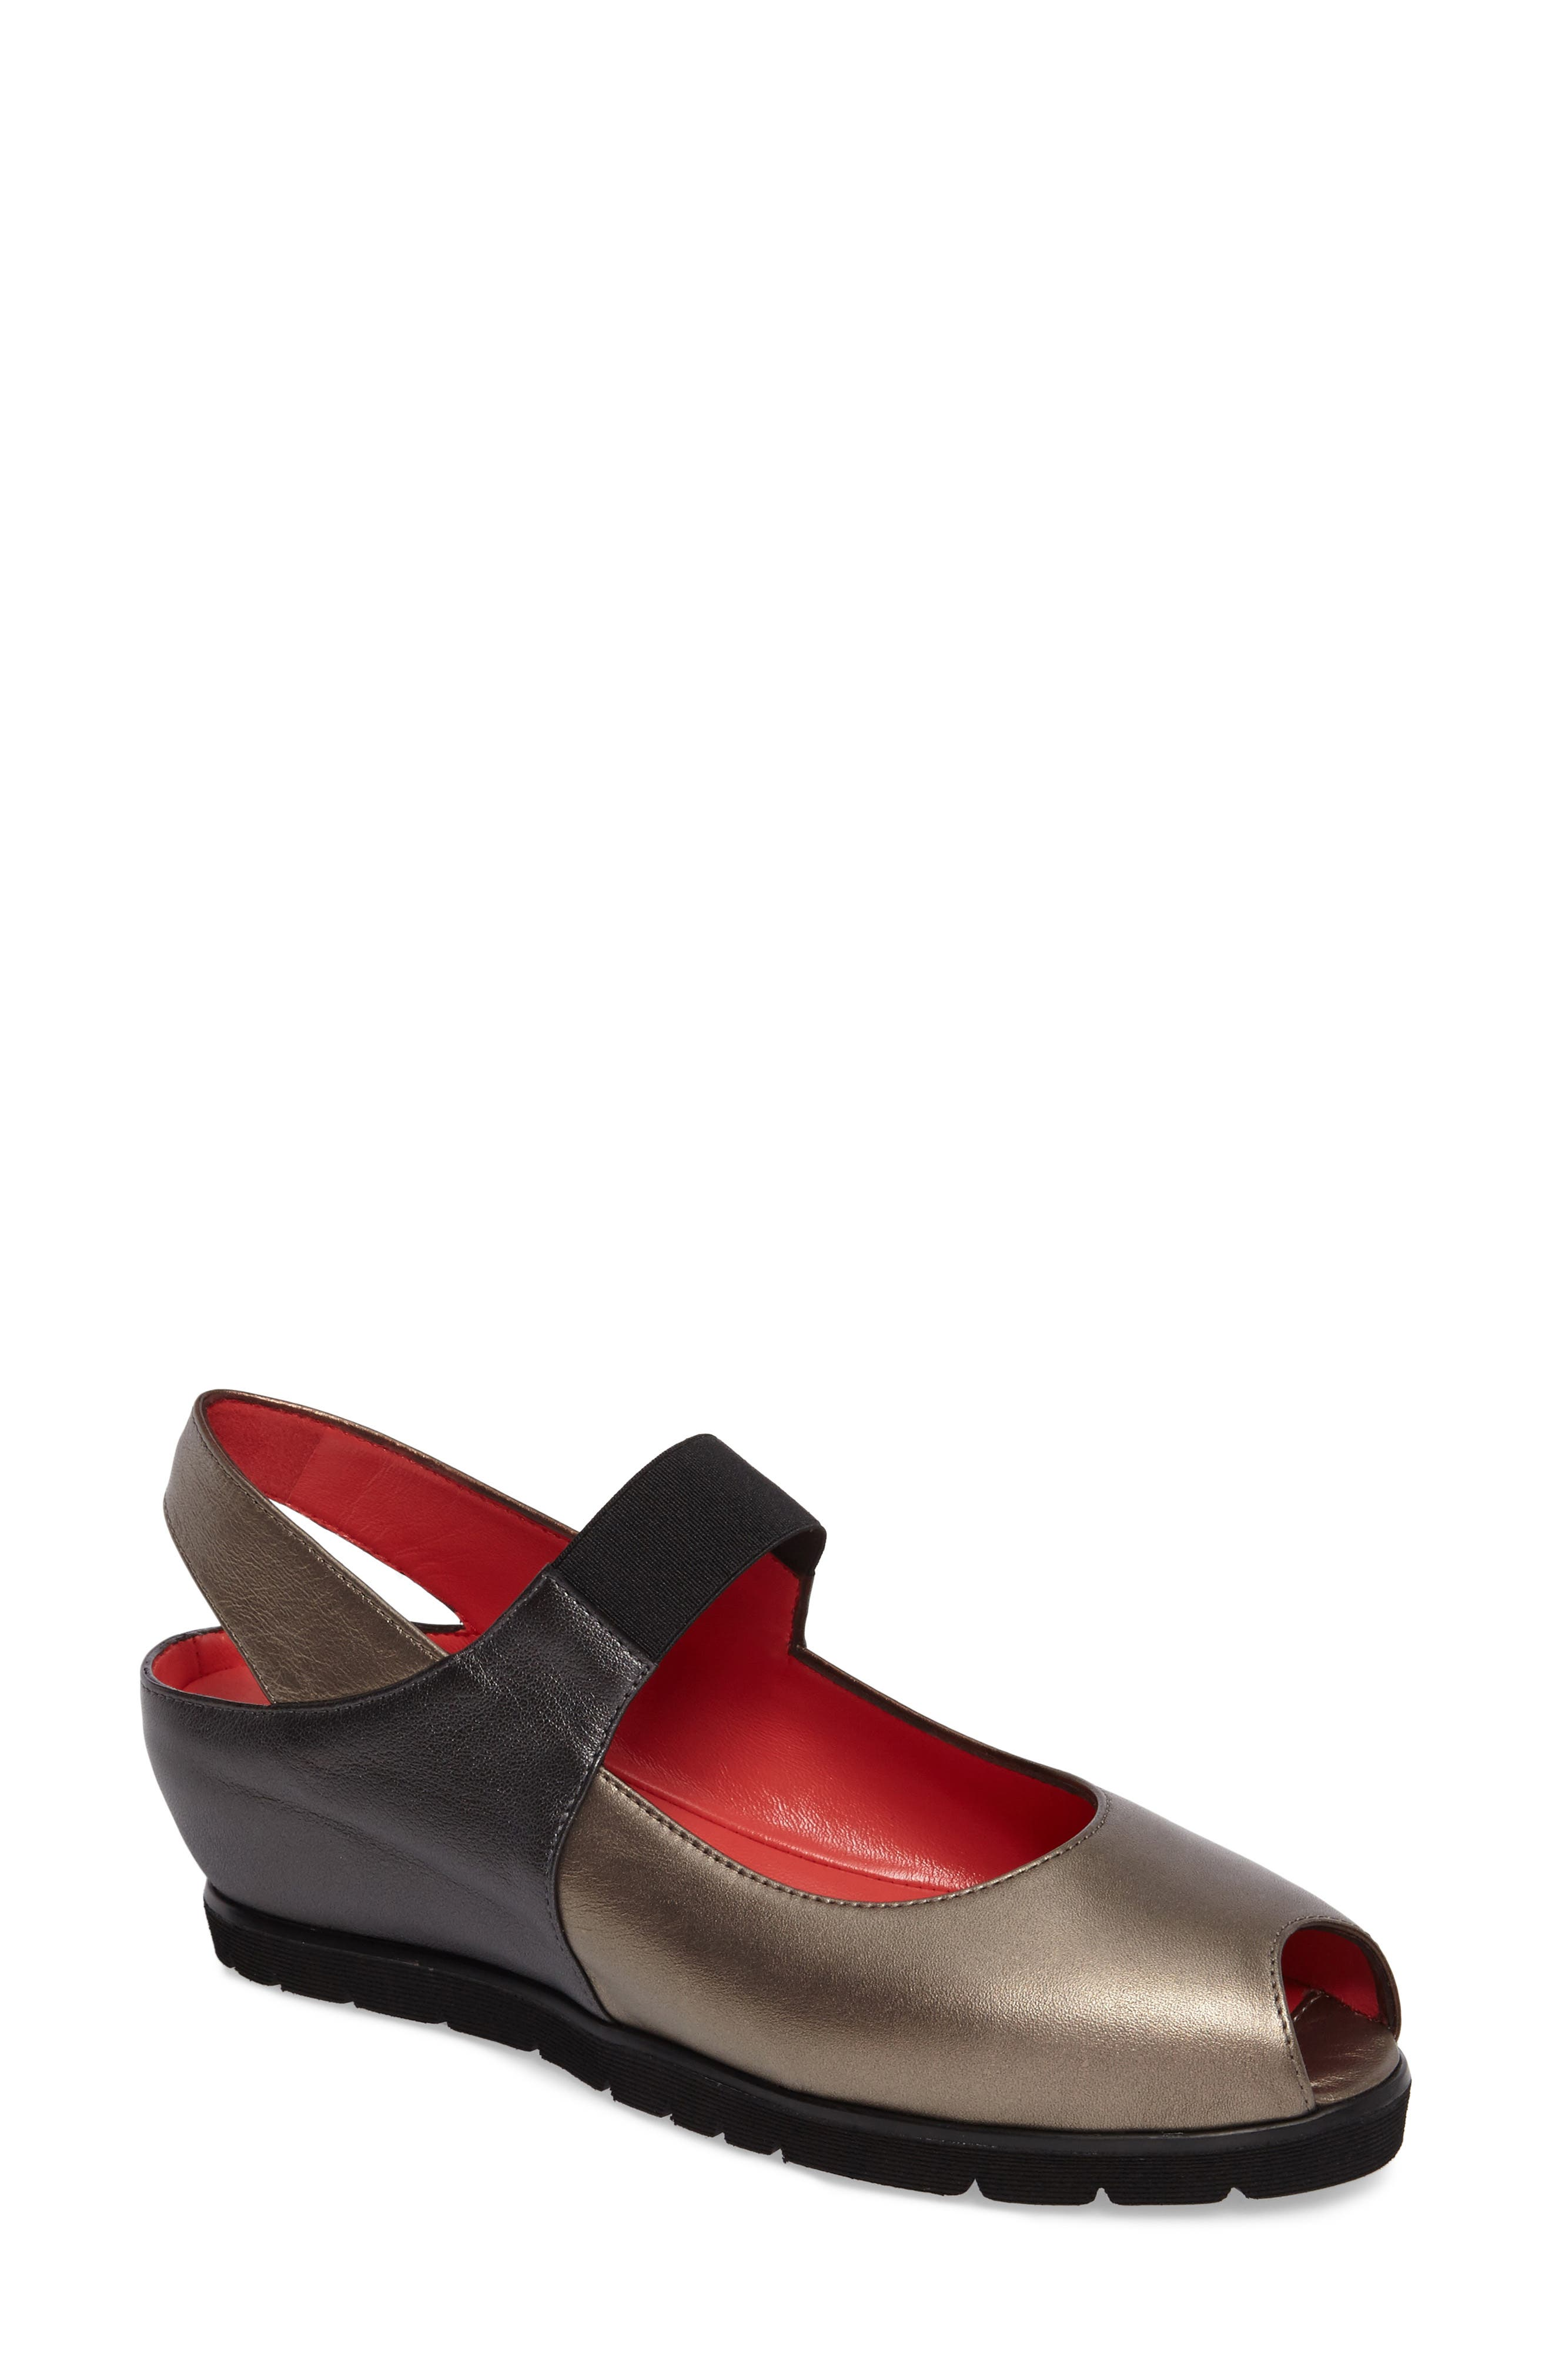 Pas de Rouge Slingback Peep Toe Wedge (Women)